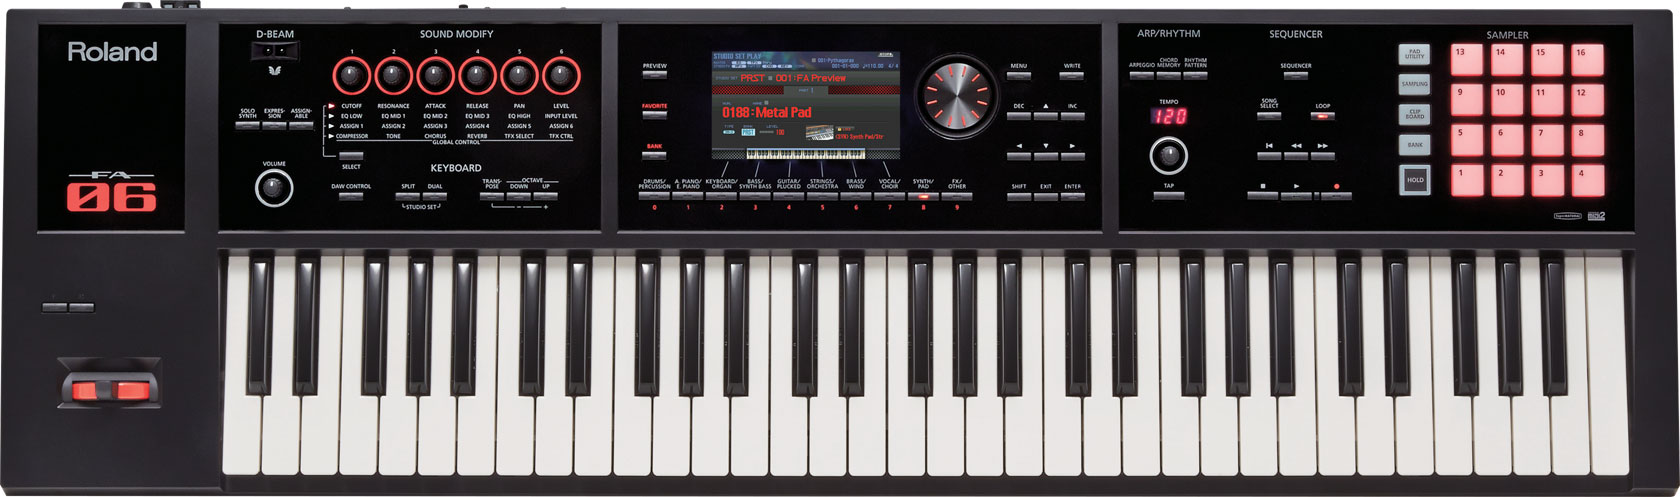 roland fa 06 workstation first look 2014 namm show synthtopia. Black Bedroom Furniture Sets. Home Design Ideas